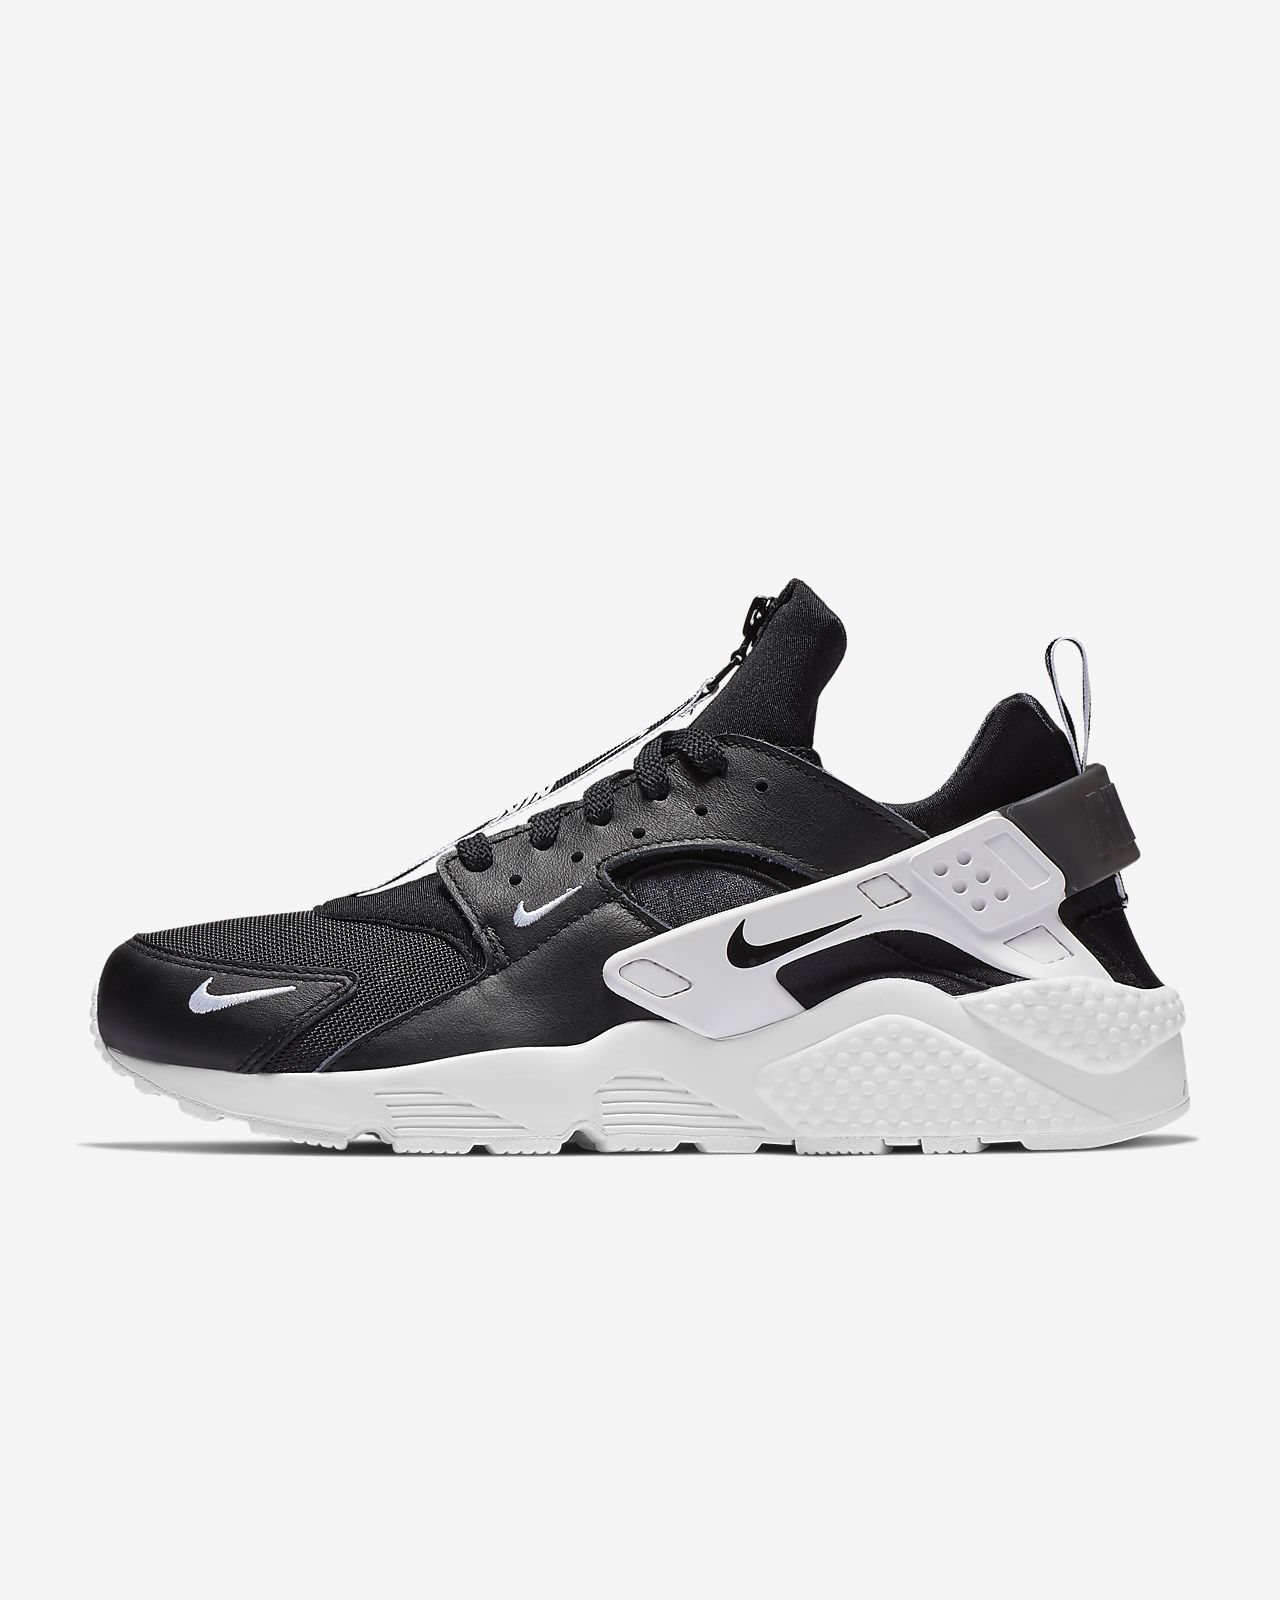 in stock 9c99f 7c363 Men s Shoe. Nike Air Huarache Run Premium Zip